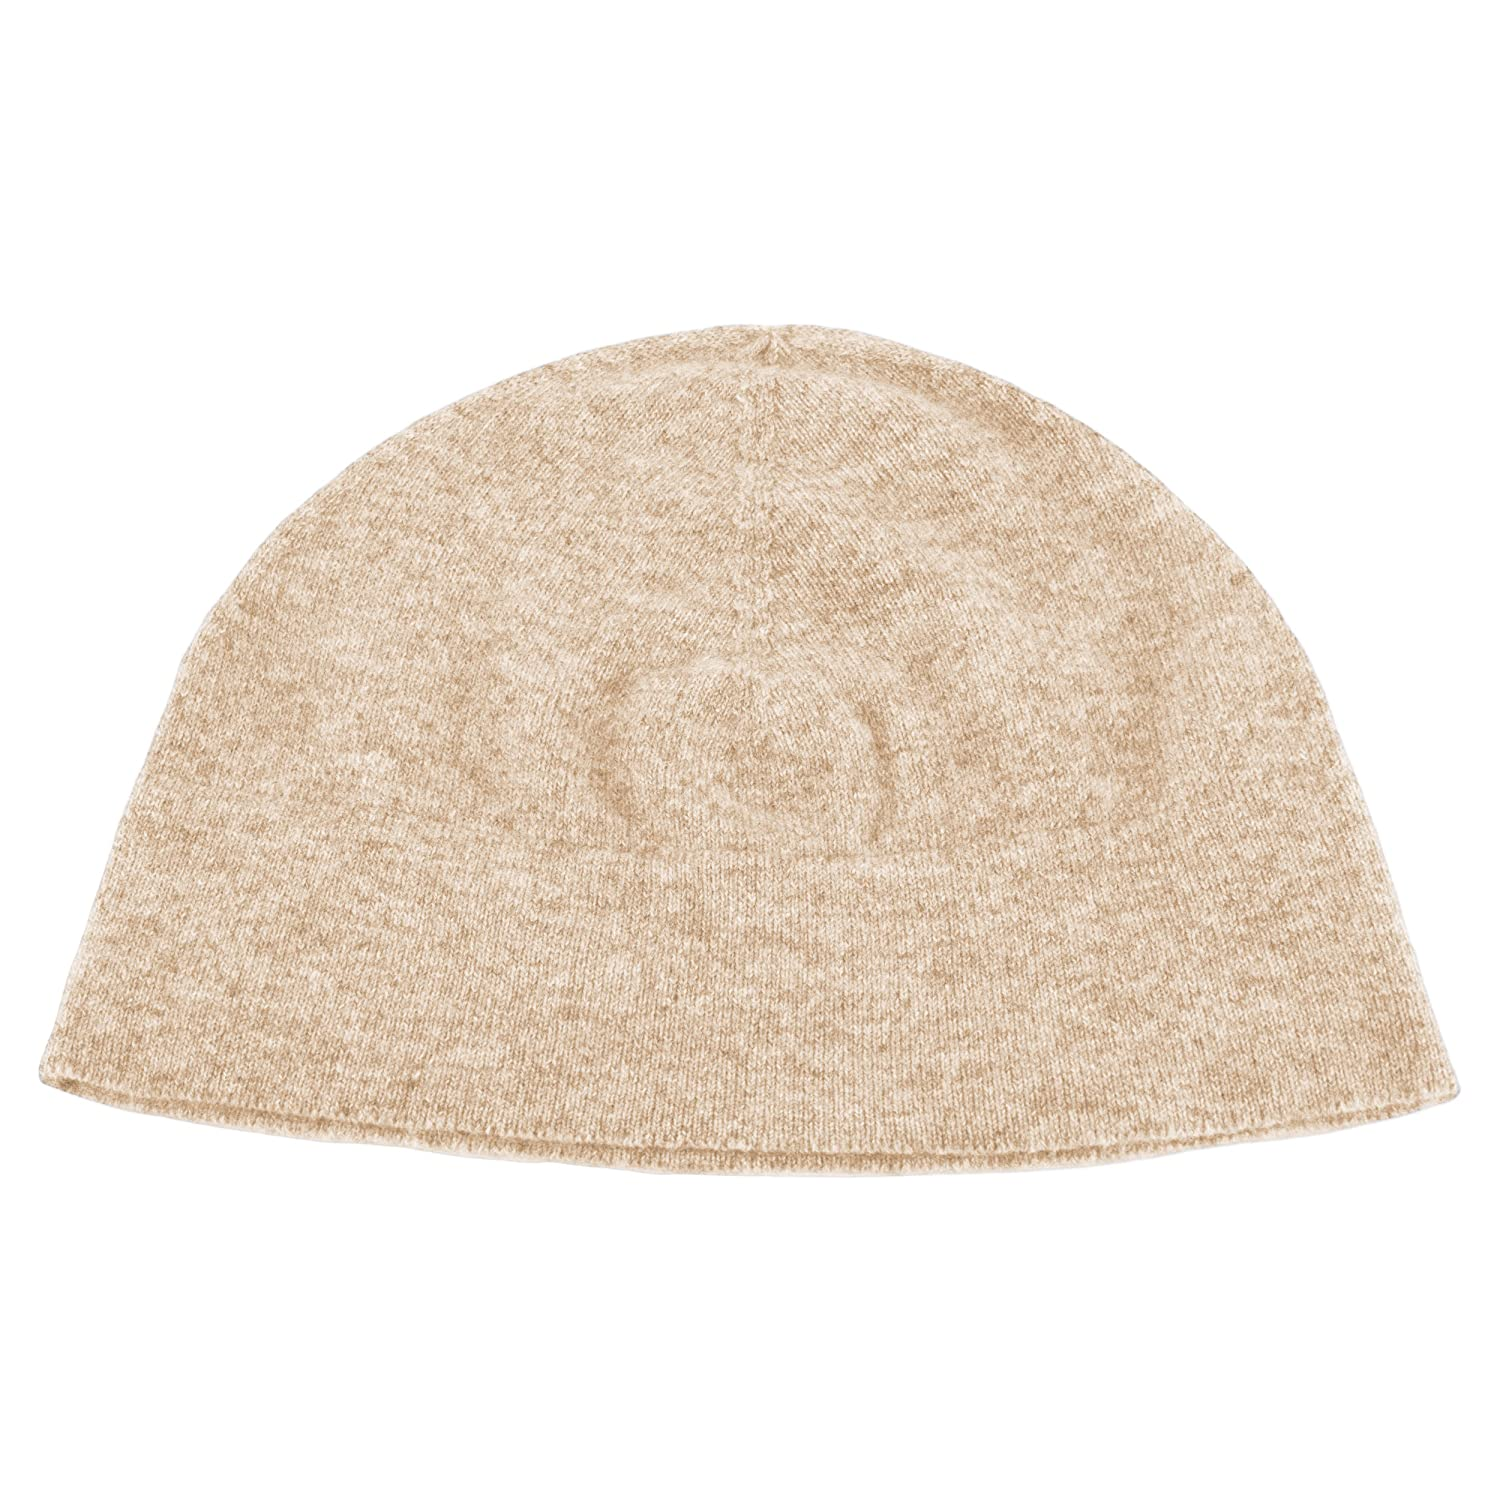 24eb0d2a64662 Love Cashmere Mens 100% Cashmere Watch Cap Beanie Hat - Light Natural - Made  in Scotland RRP  130 at Amazon Men s Clothing store